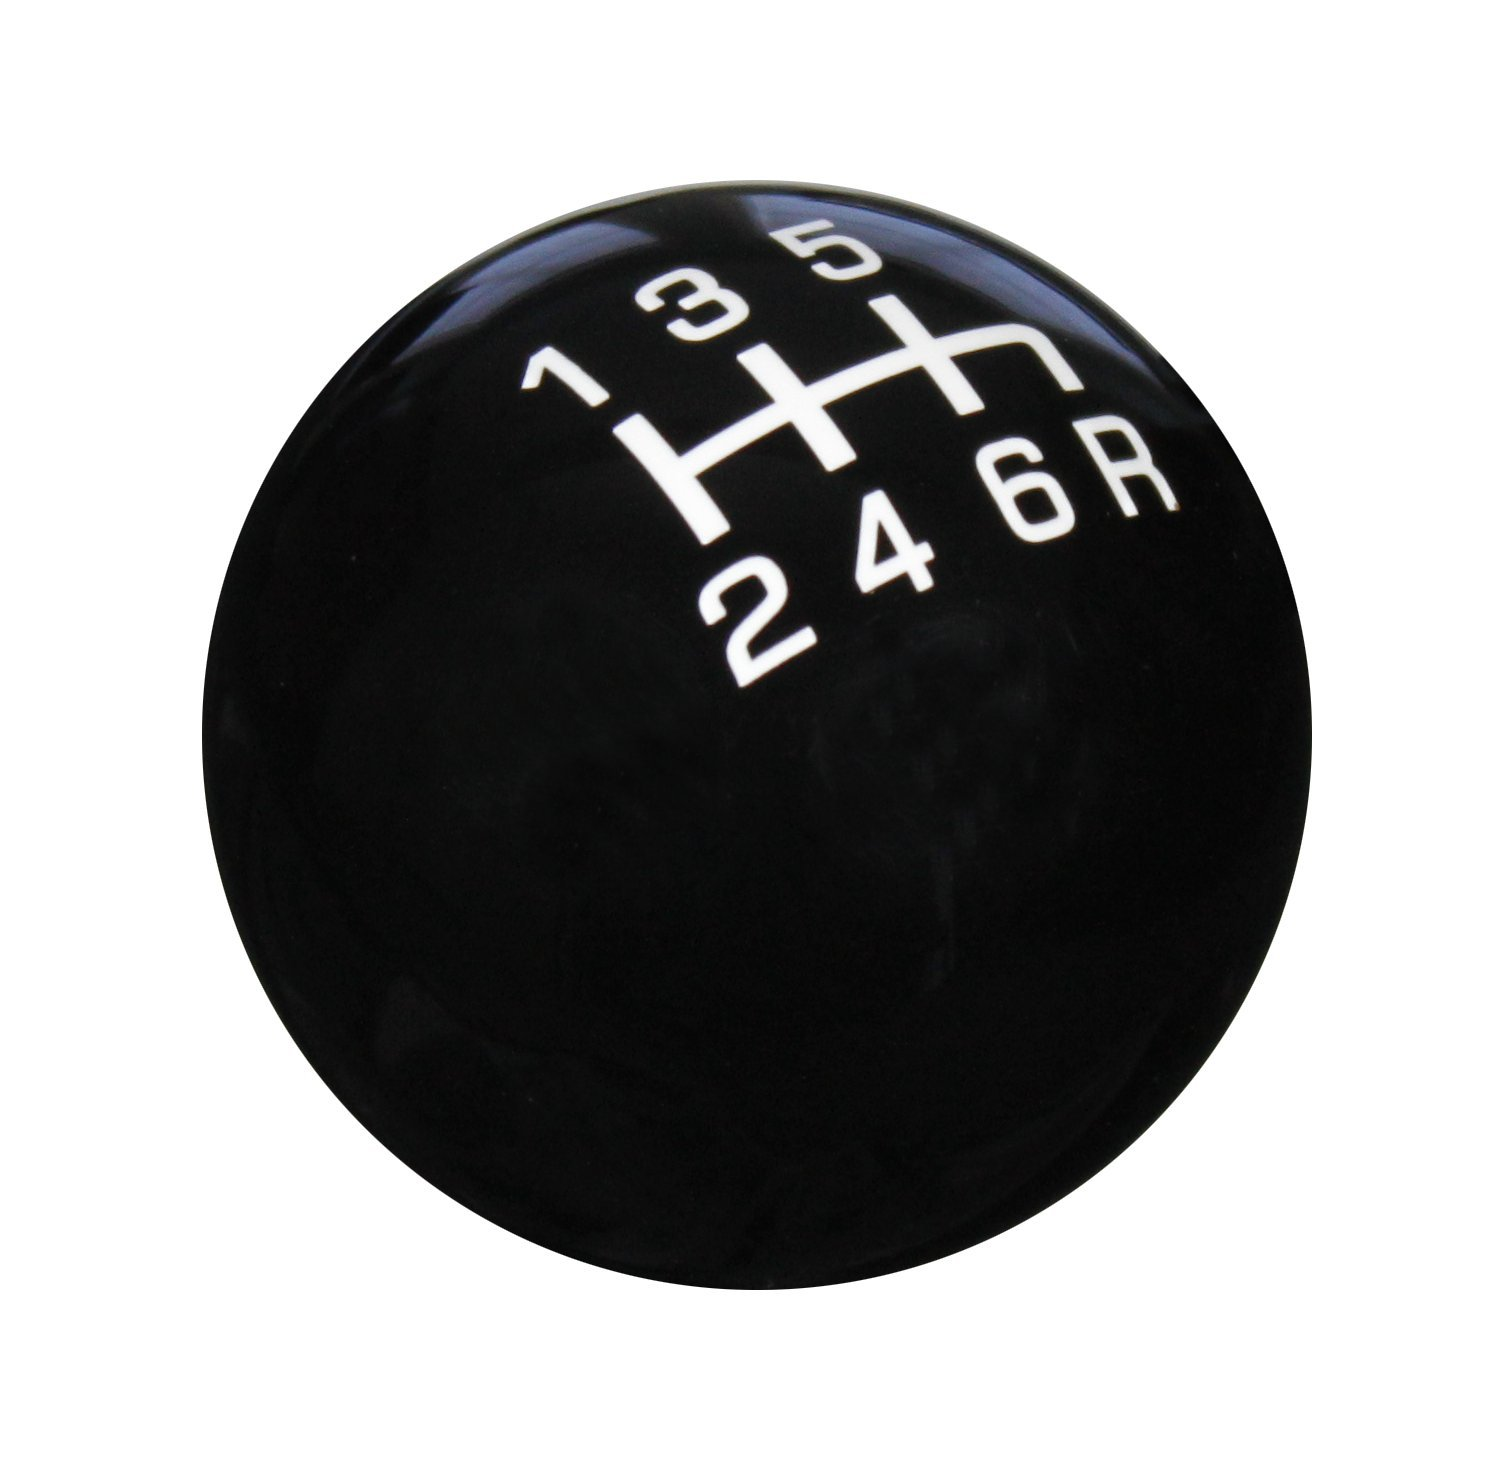 SK504NL-PW-6RDR Pro Series Red//White 6-Speed Reverse Lower Right Shift Knob Speed Dawg